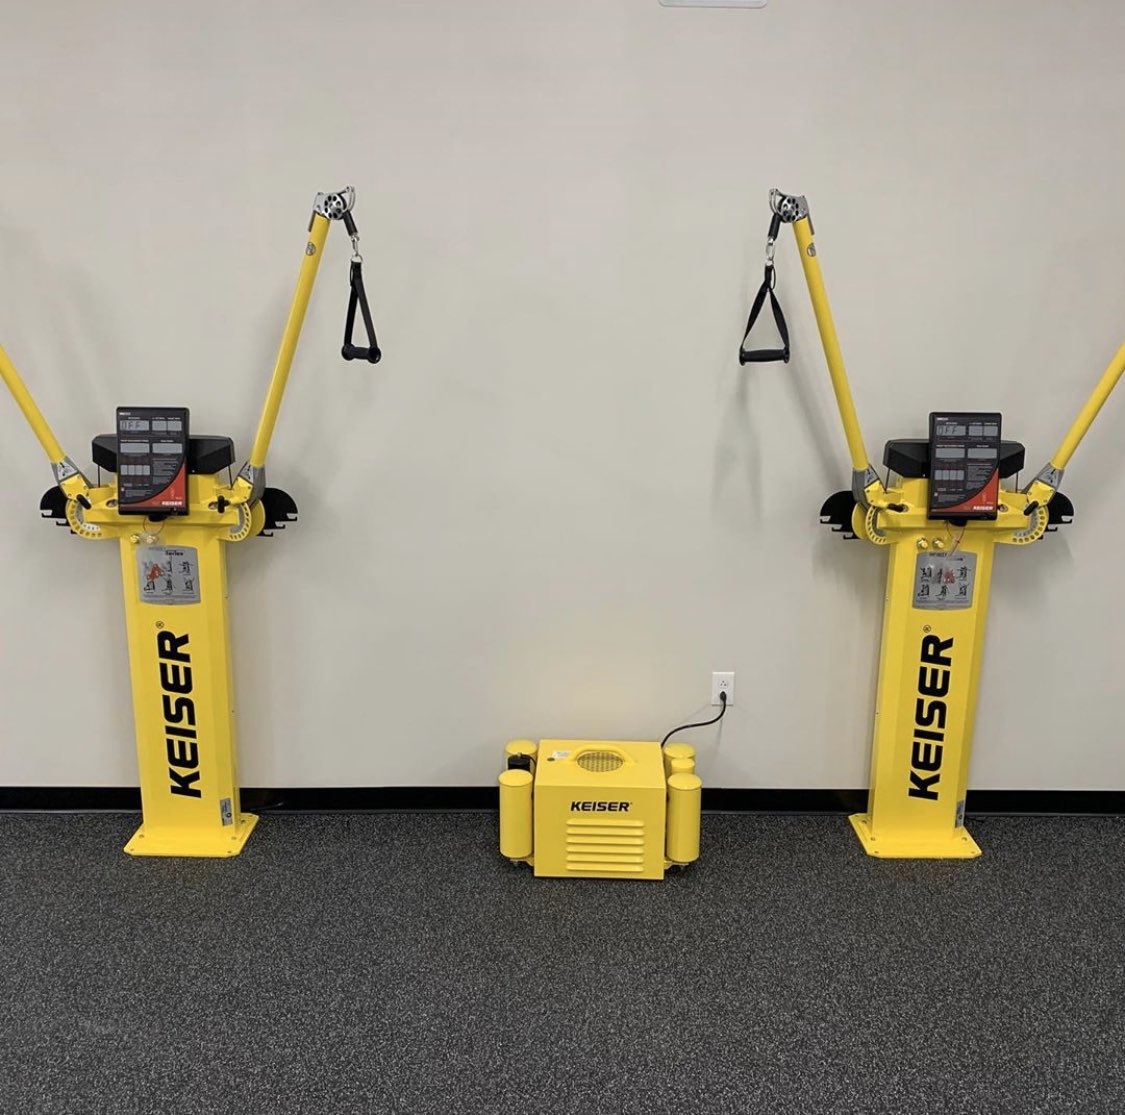 Did you know that you can customize the color of your #Keiser equipment? #GoodEnoughIsnt #functionaltraining pic.twitter.com/Q4PPVPO1Sn